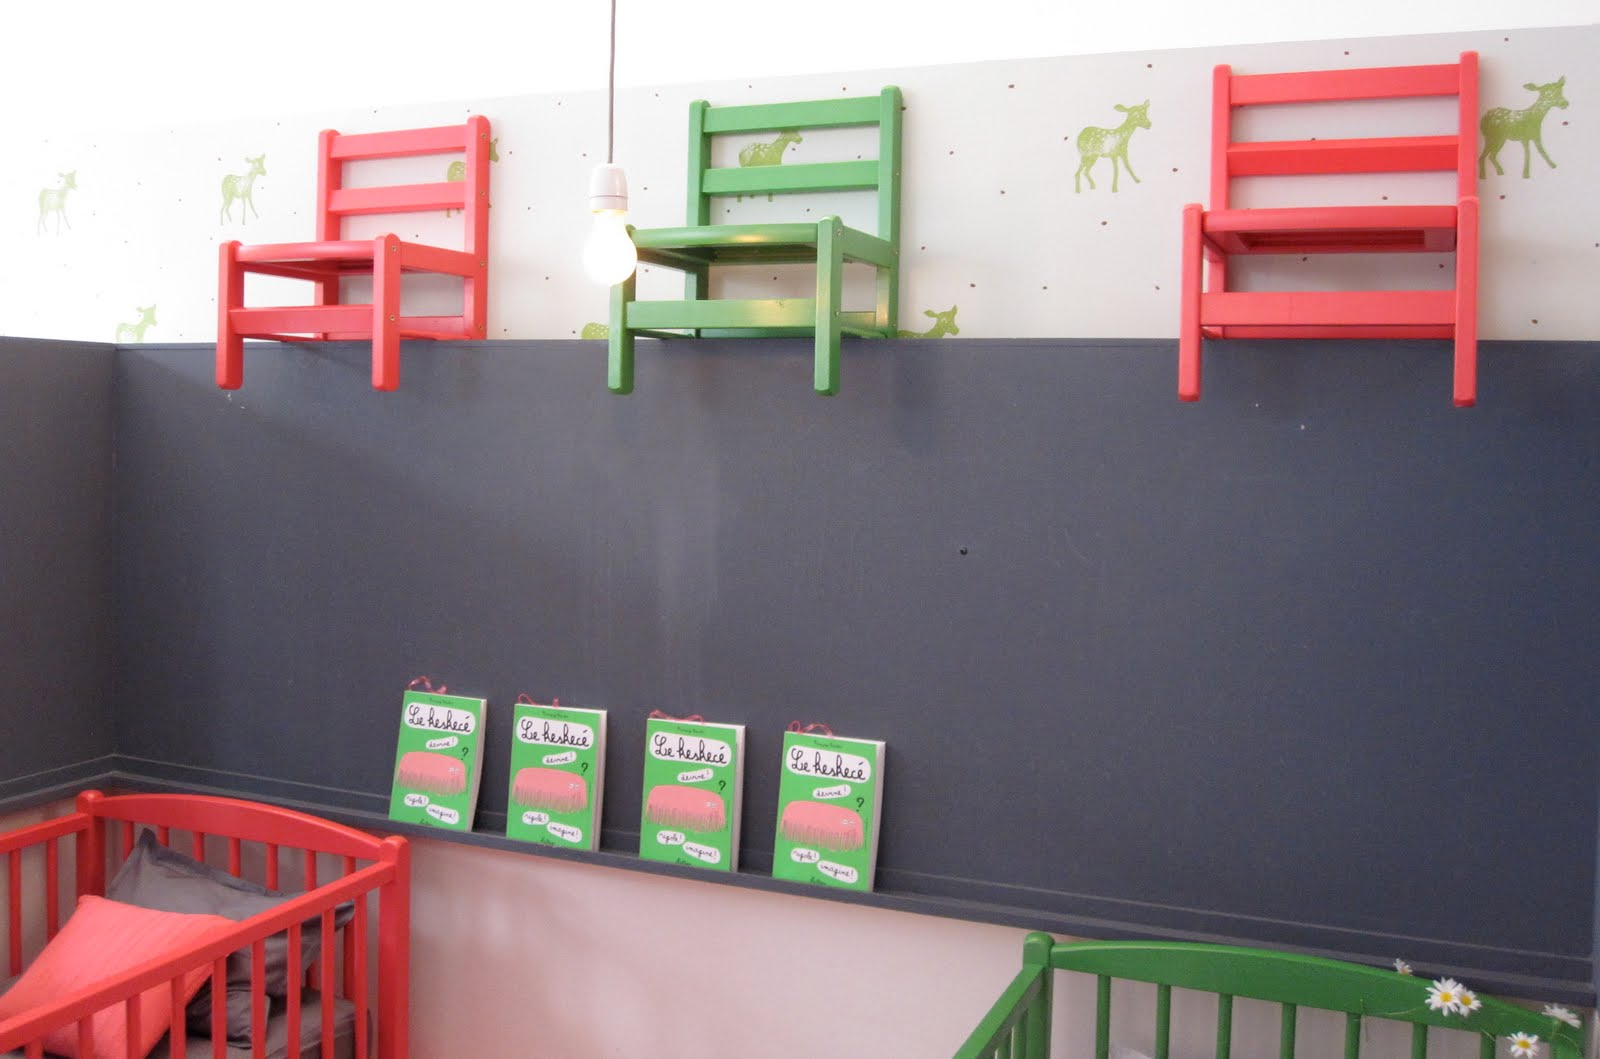 bon aqua single girls Find a great location for a girl's birthday party in bon aqua, tennessee search our birthday venue database for top birthday party locations in bon aqua.